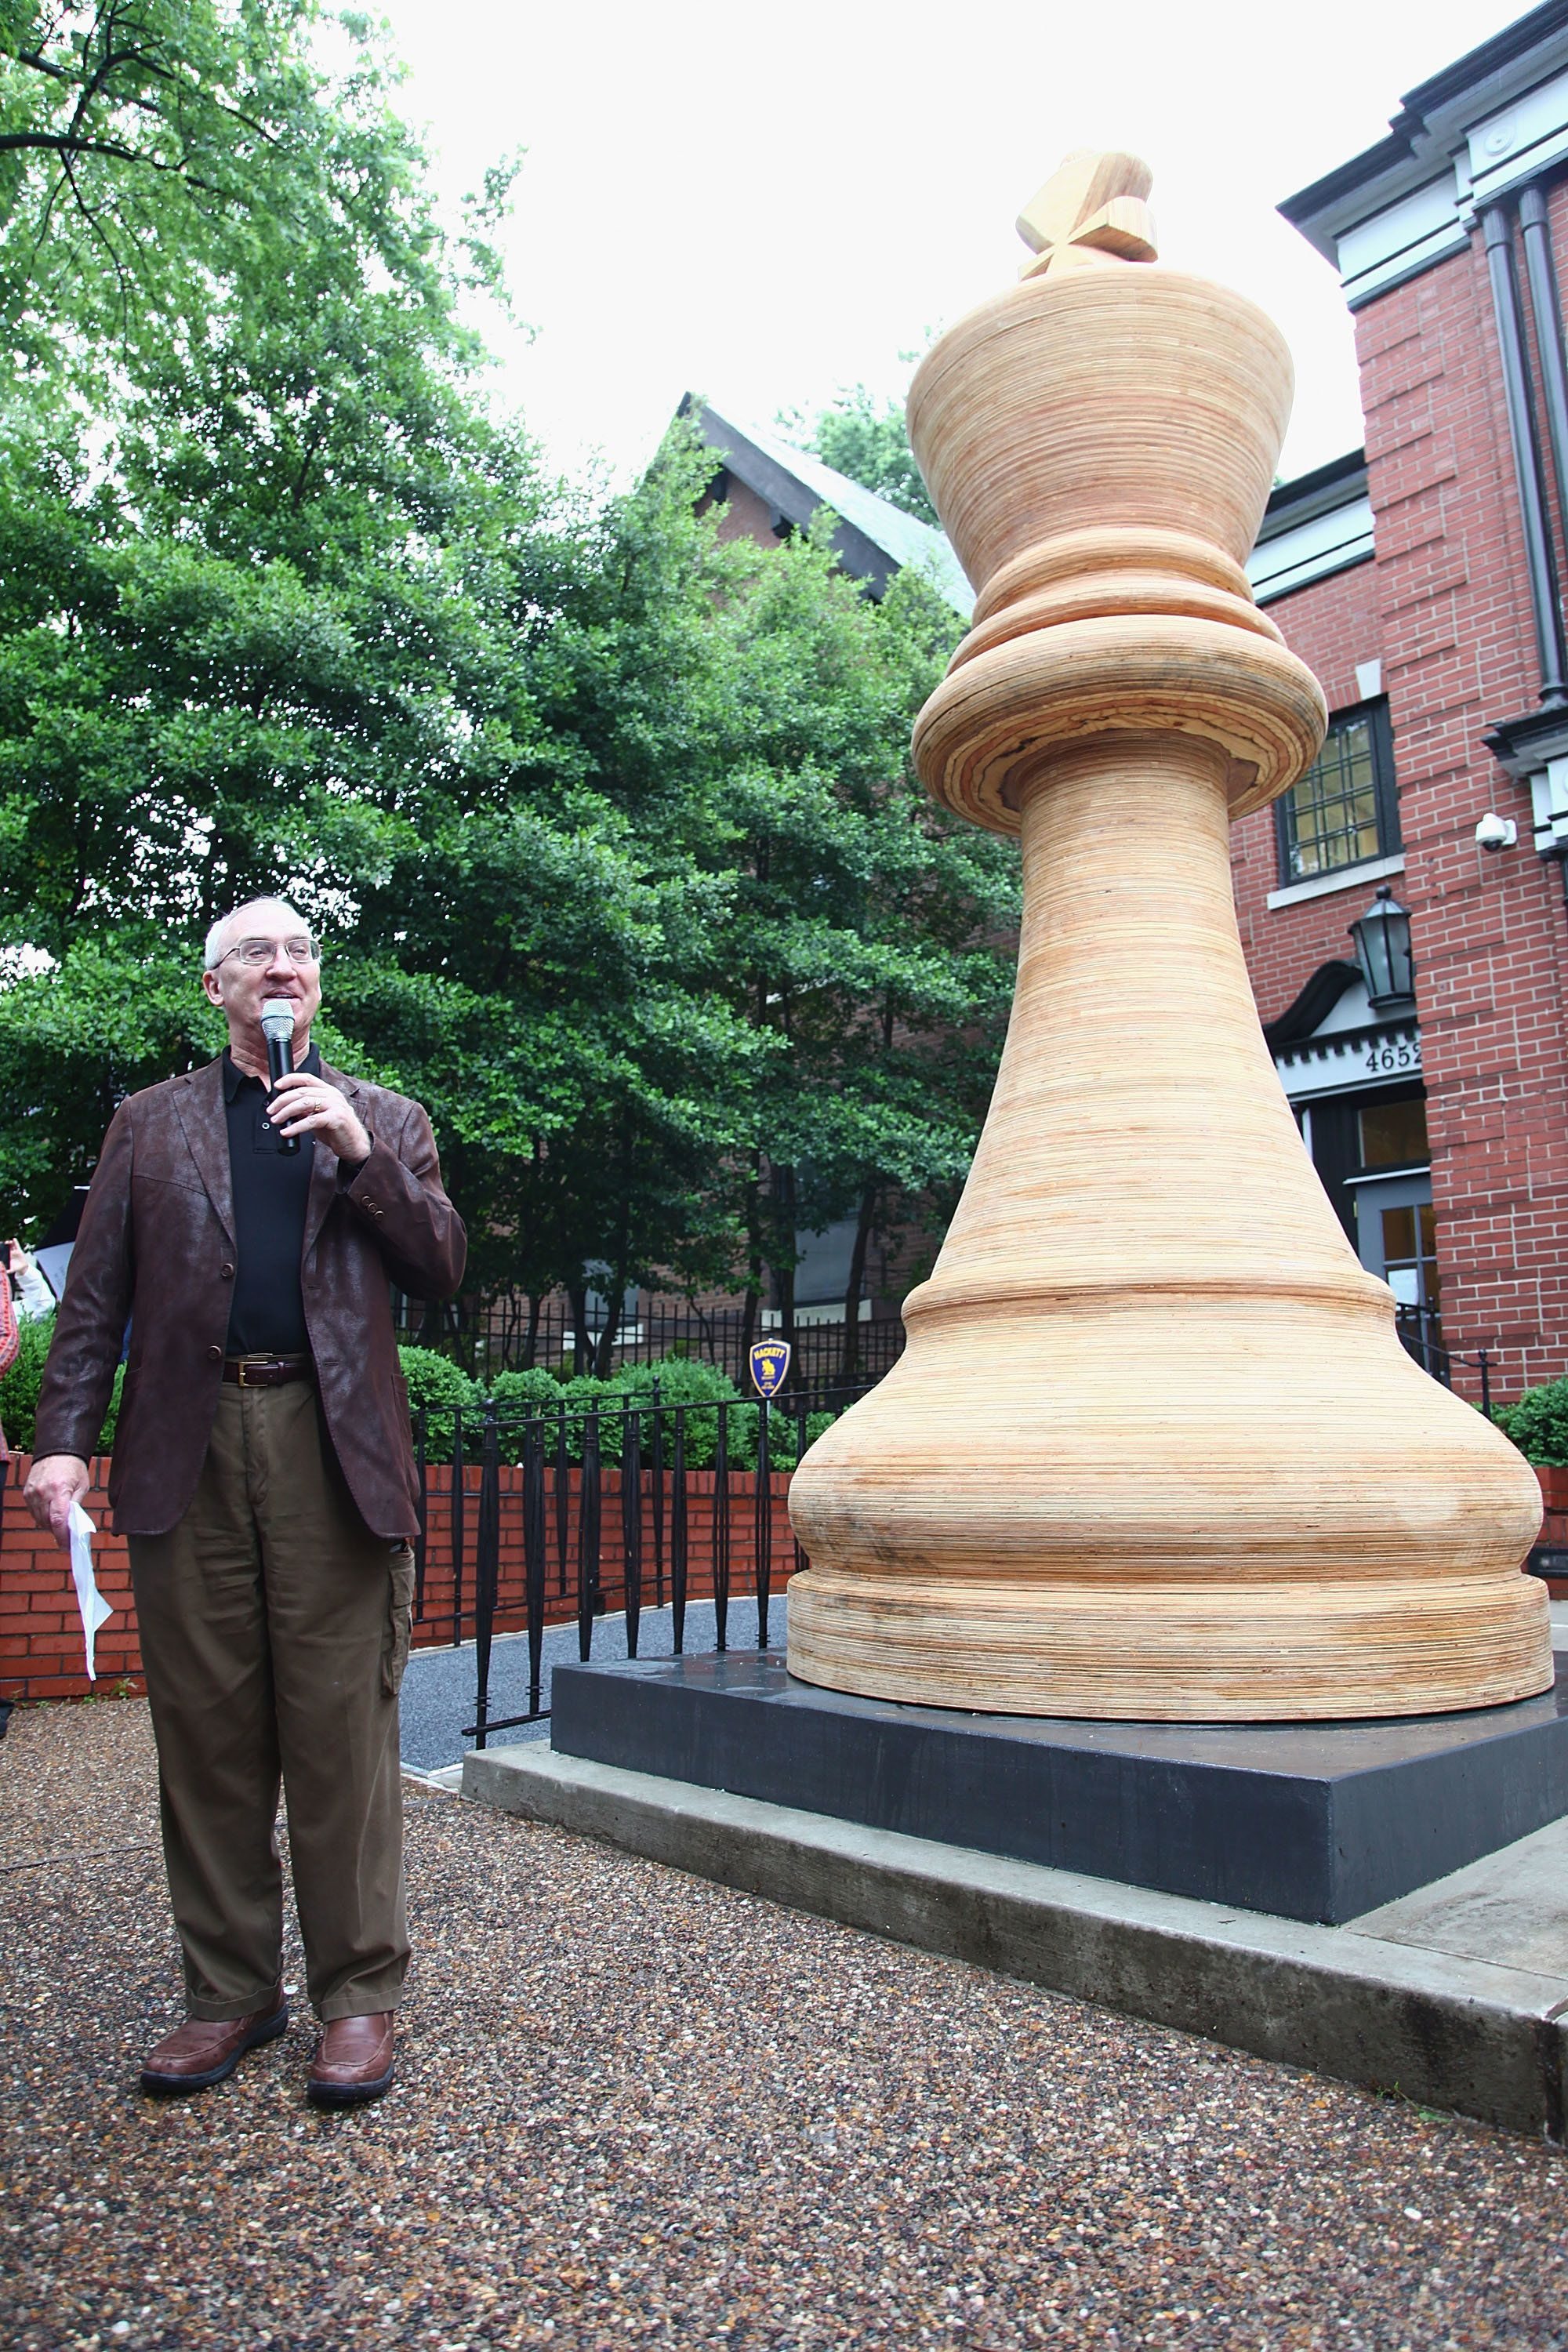 ST LOUIS, MO - MAY 07: Founder and President of the Board of the Saint Louis Chess Club Rex Sinquefield at theNew Guinness World Record Set in St. Louis: Largest Chess Piece at Chess Club and Scholastic Center of Saint Louis on May 7, 2012 in St Louis, Missouri.  (Photo by Dilip Vishwanat/Getty Images)